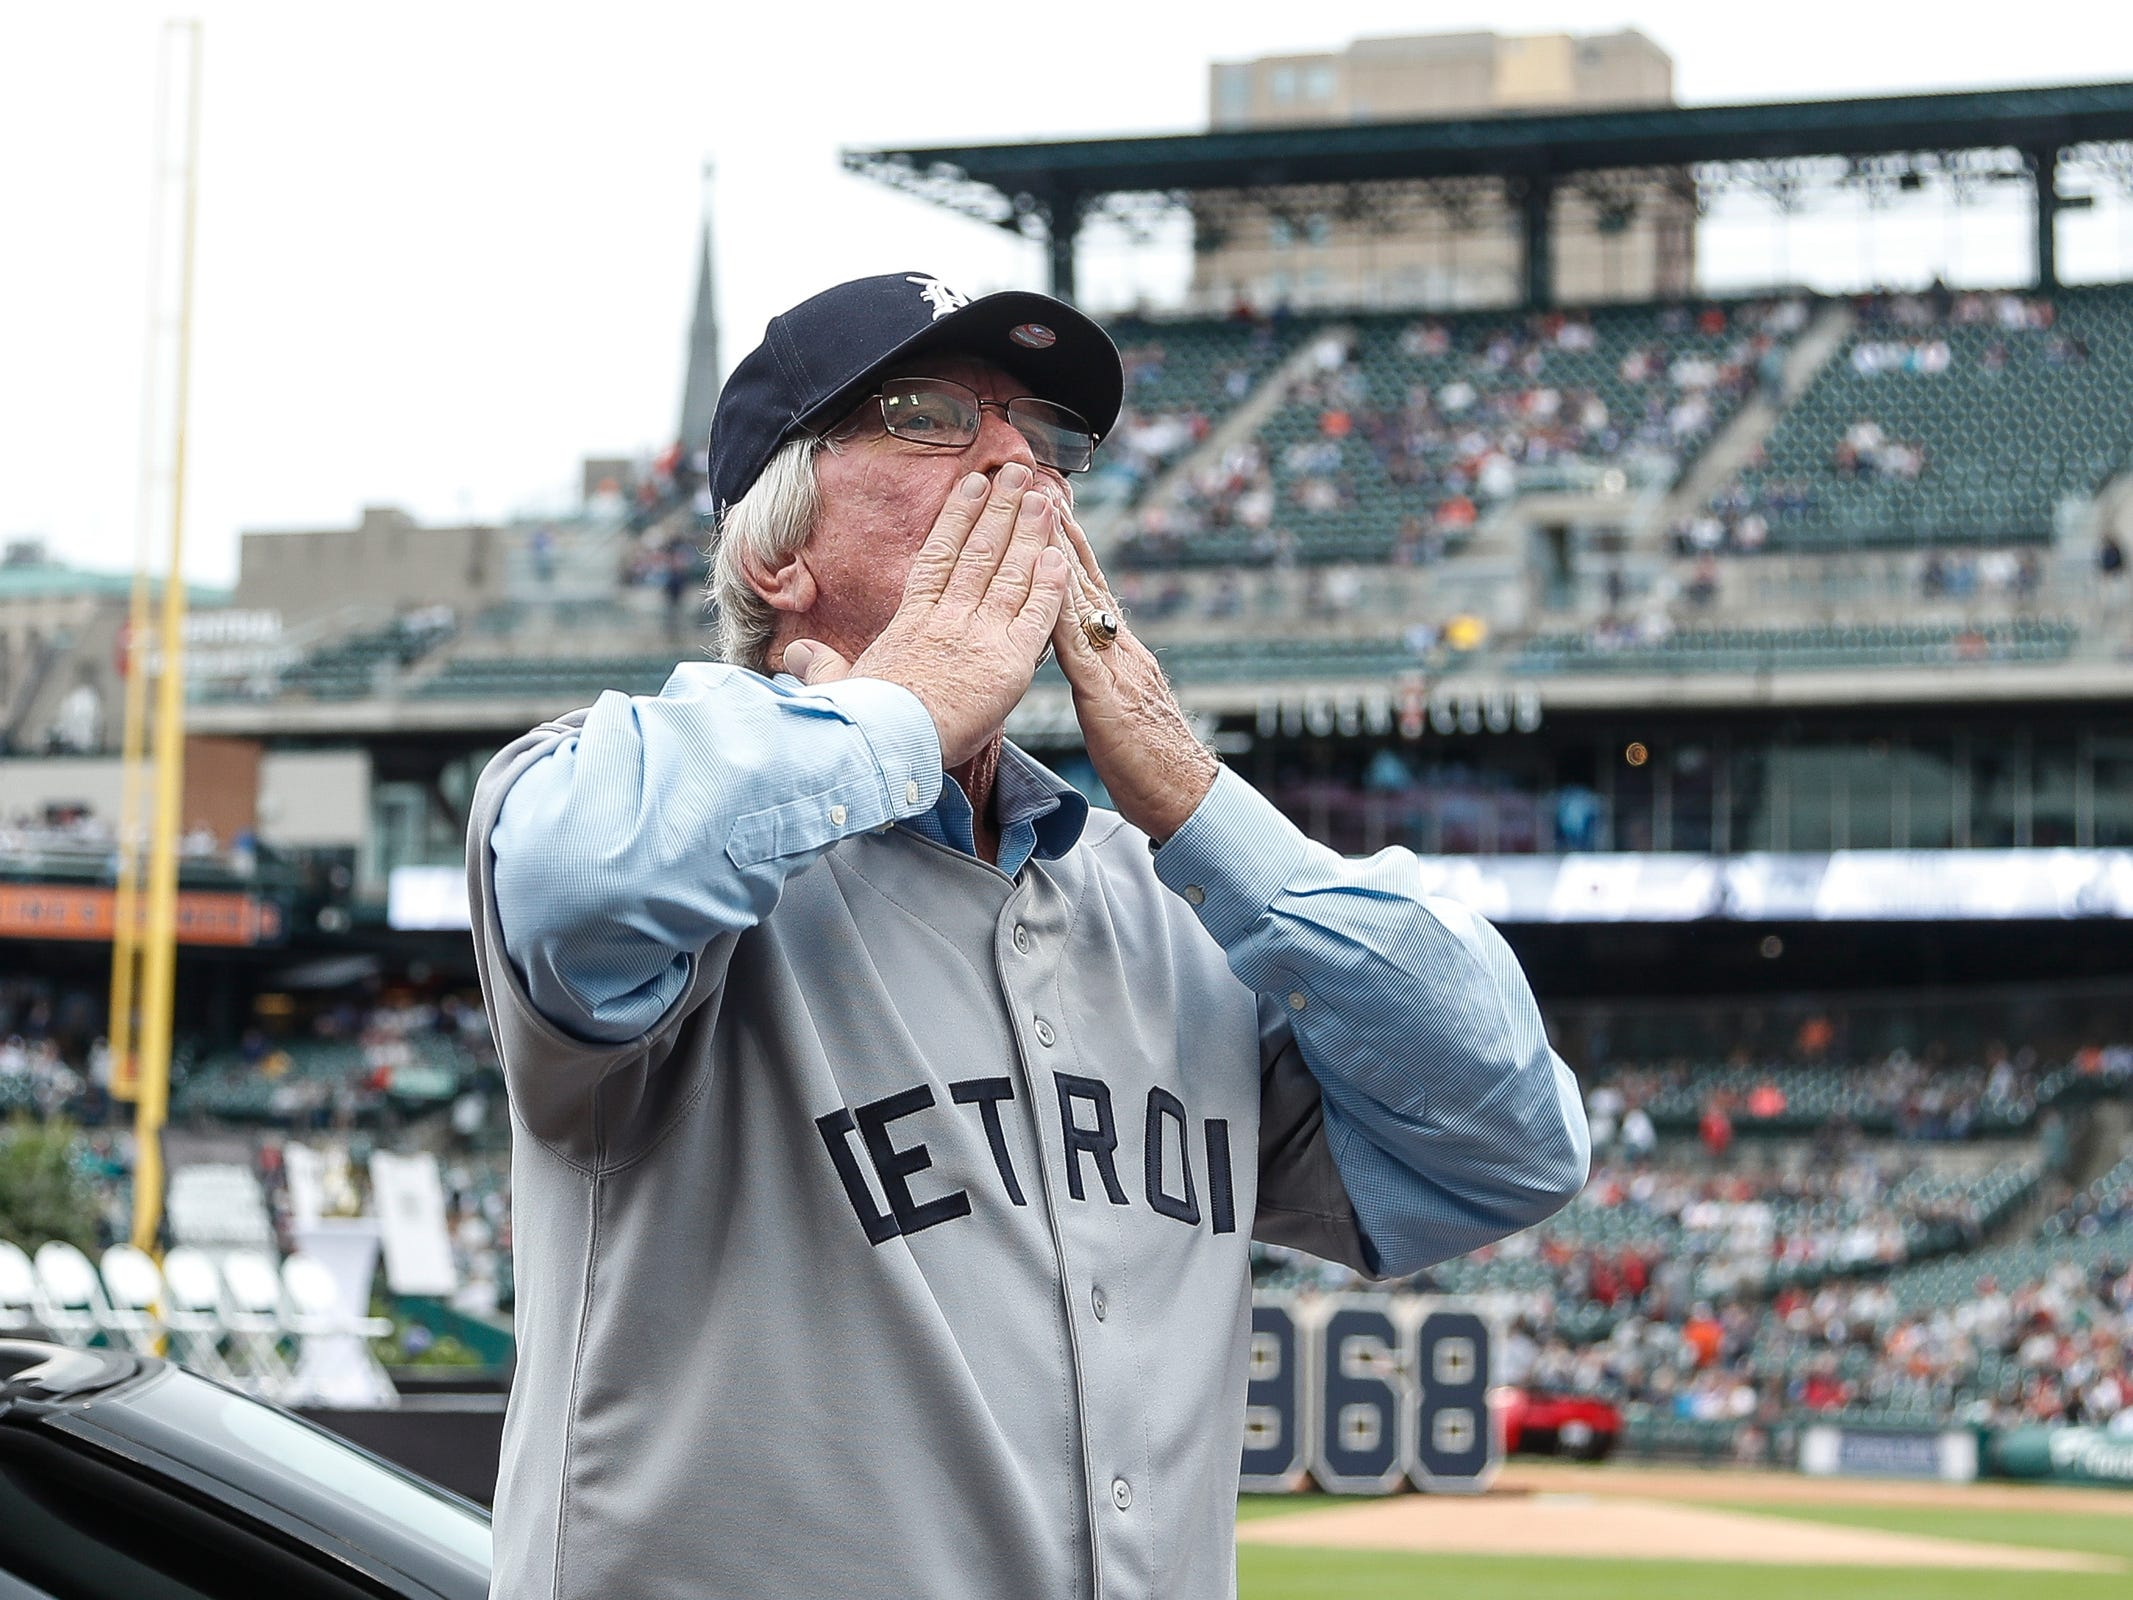 Former Detroit Tigers infielder Tom Matchick shows his appreciation of fans during the celebration of the 50th anniversary of the 1968 World Series championship at Comerica Park in Detroit, Saturday, Sept. 8, 2018.